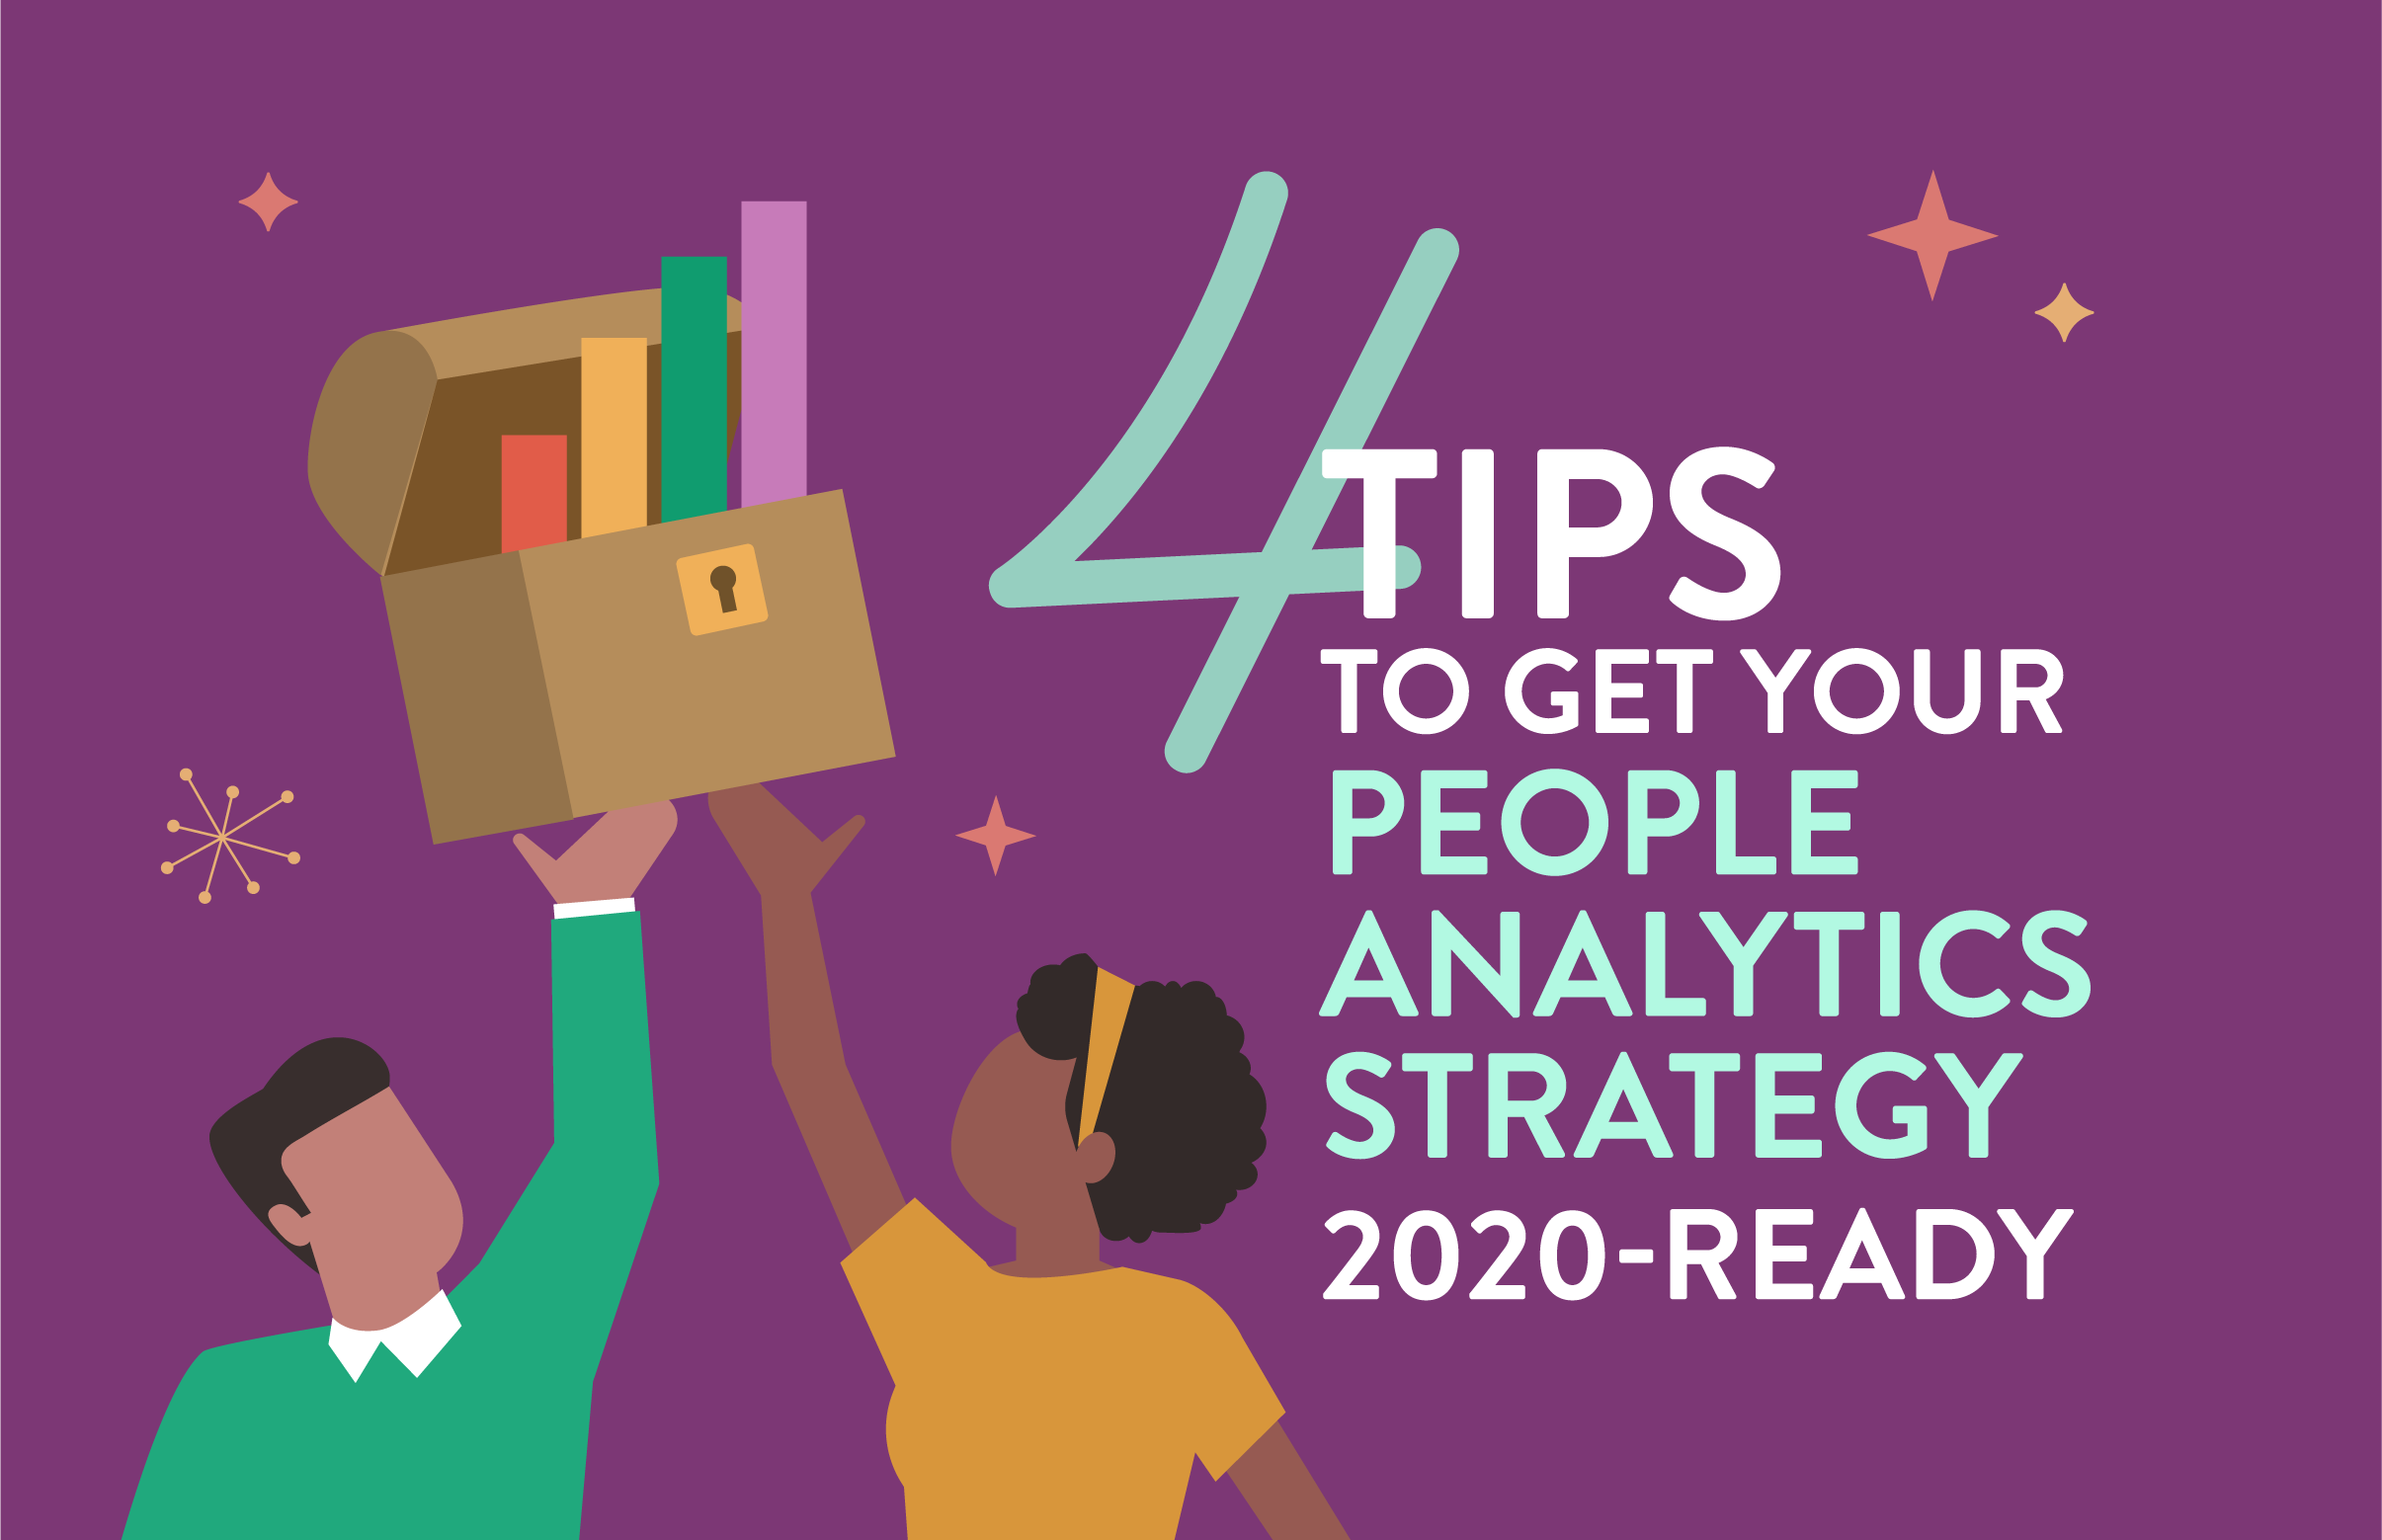 4 Tips to Get Your People Analytics Strategy 2020-Ready